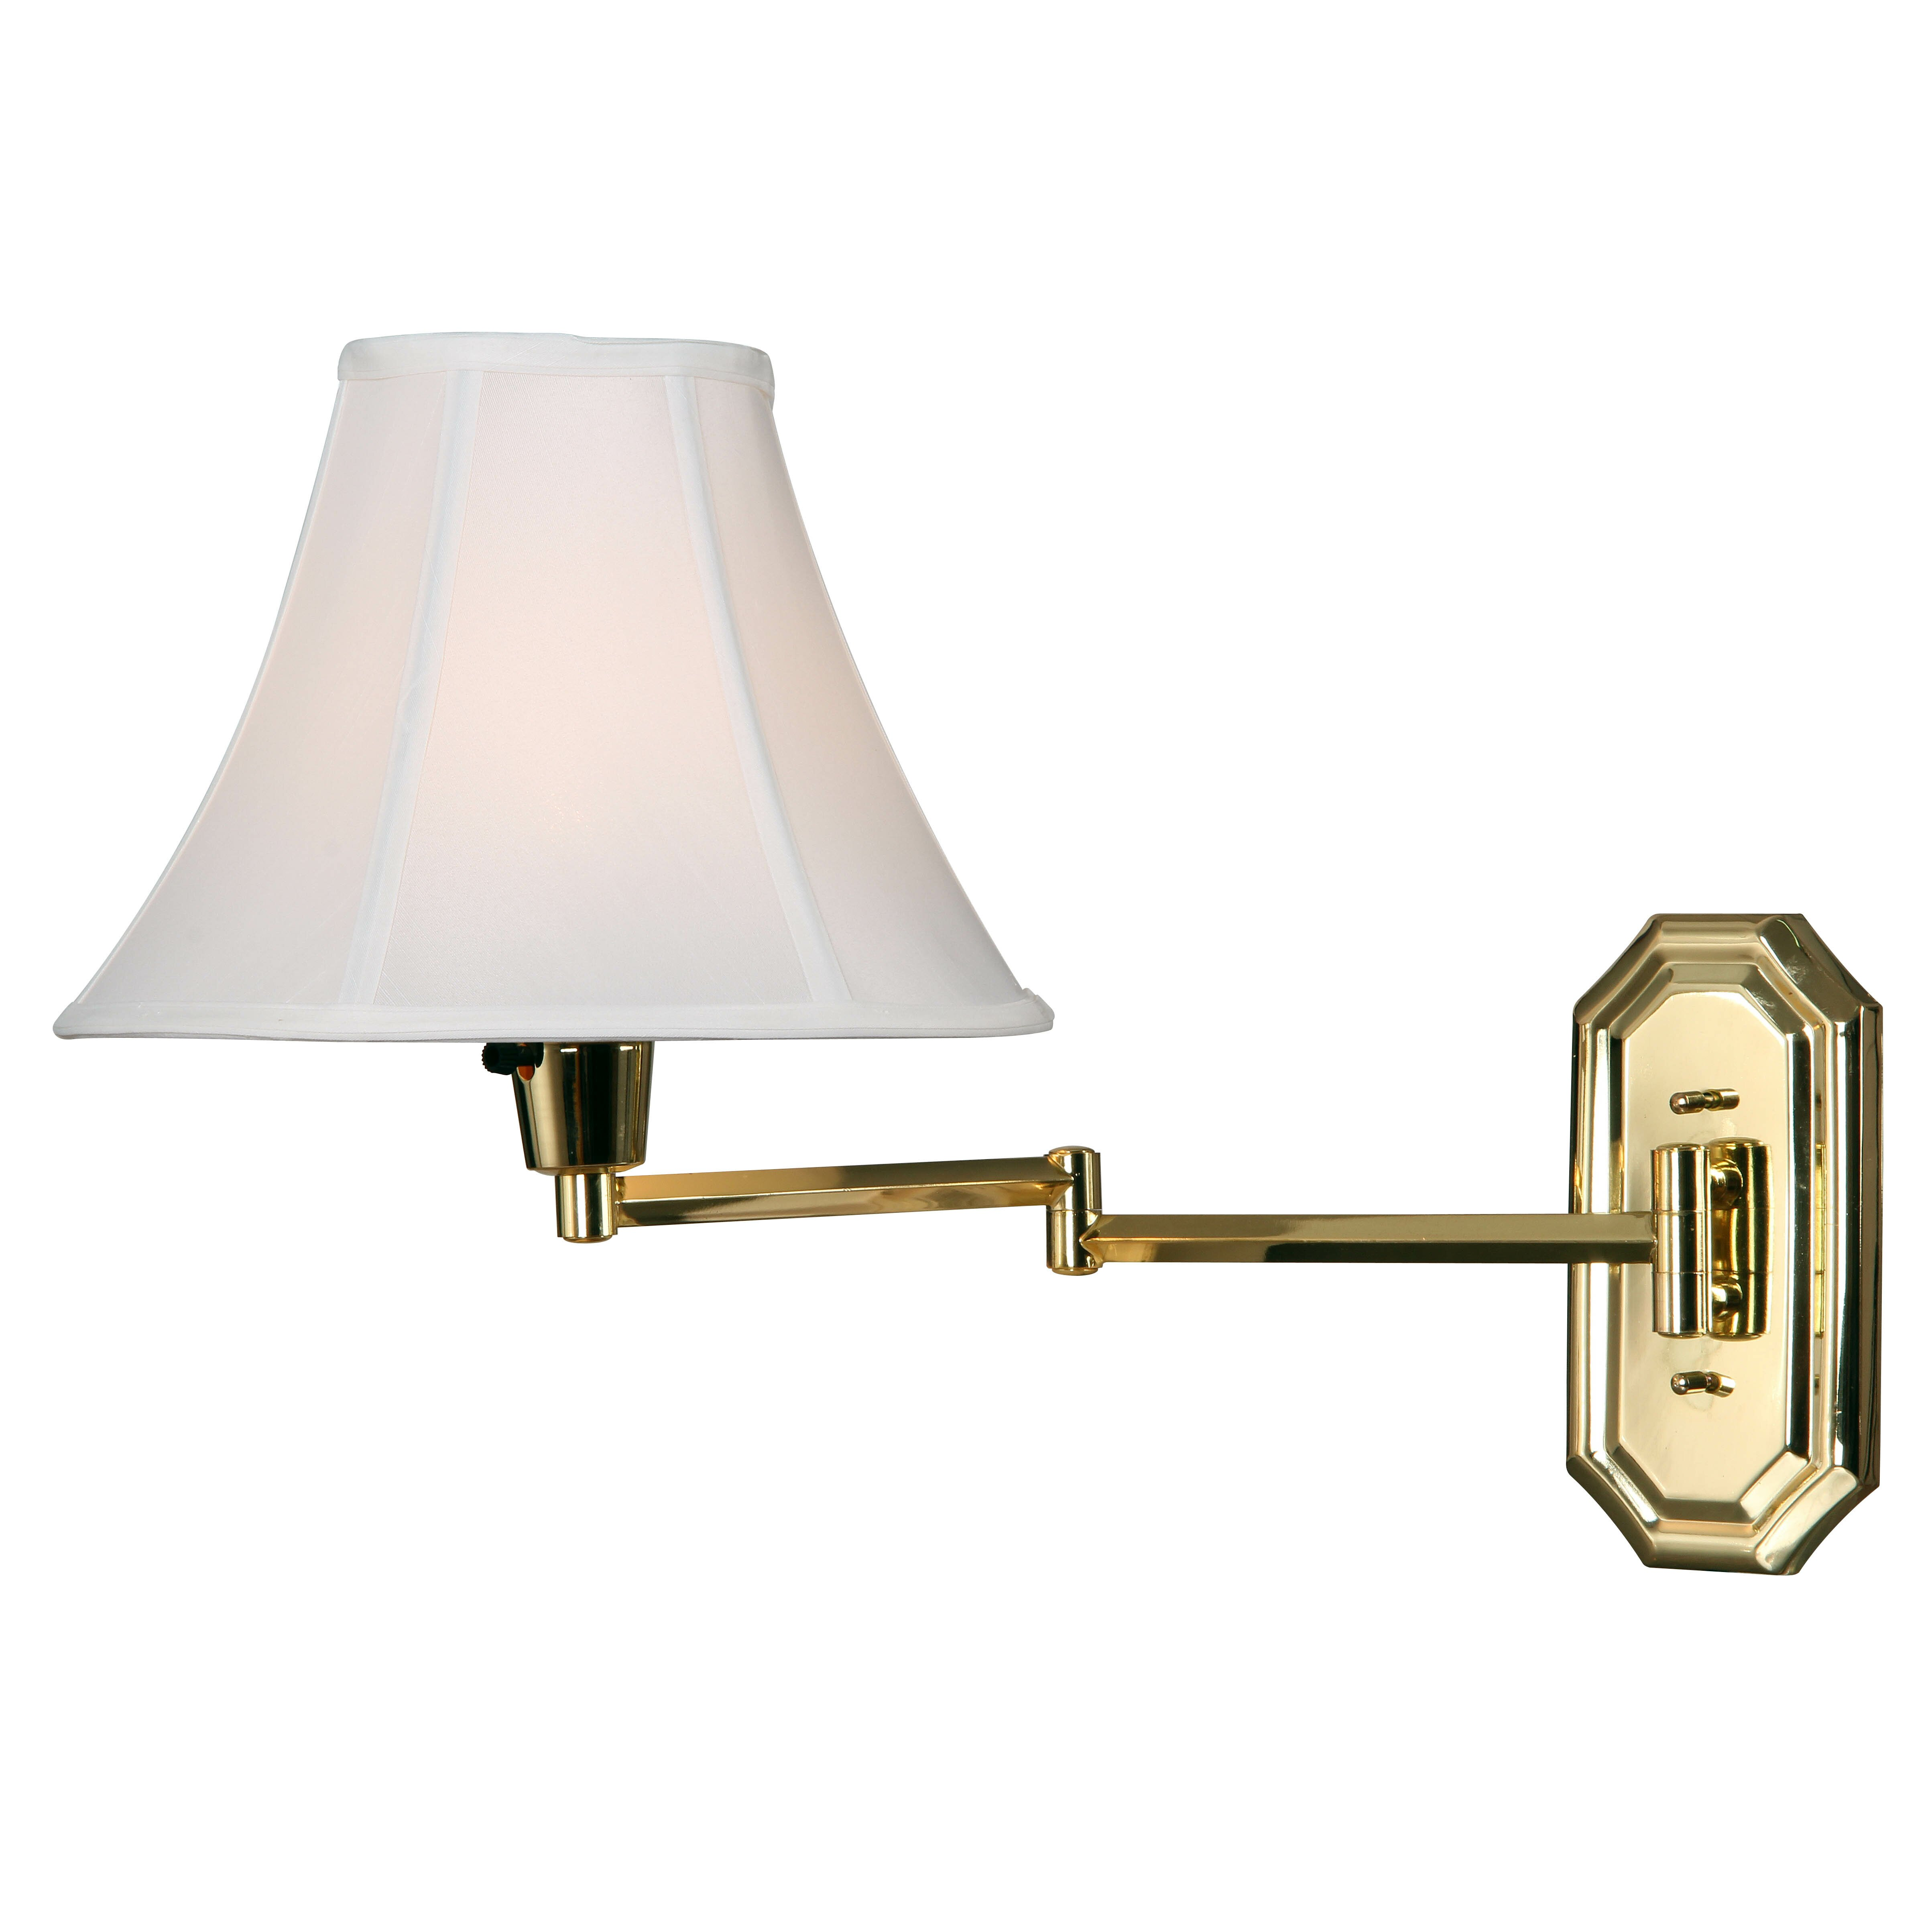 Wall Lamps Swing Arm : Wildon Home Camelia 1 Light Swing Arm Wall Lamp & Reviews Wayfair